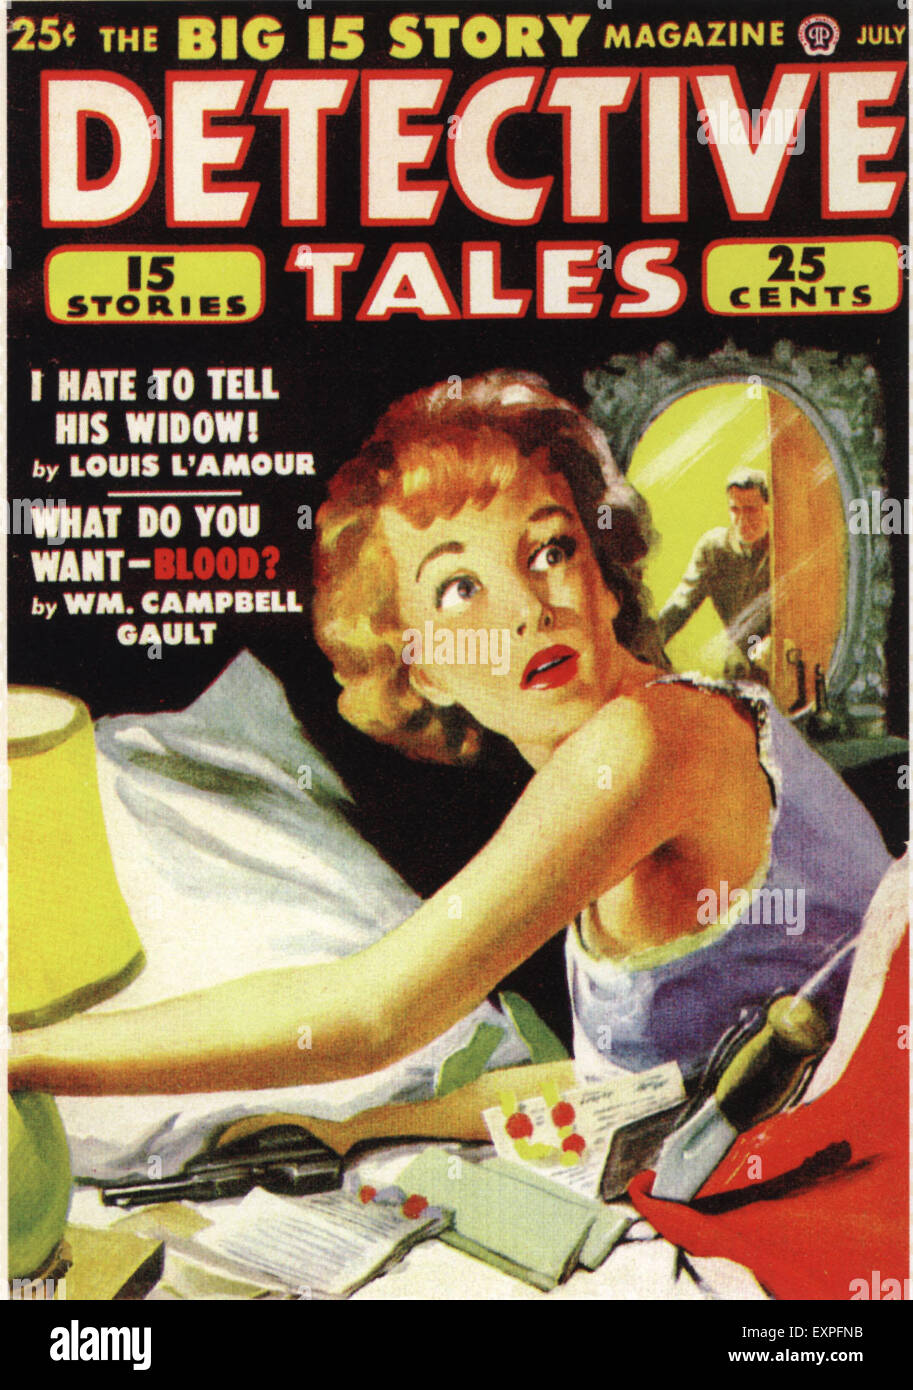 1930s USA Detectives Tales Magazine Cover - Stock Image